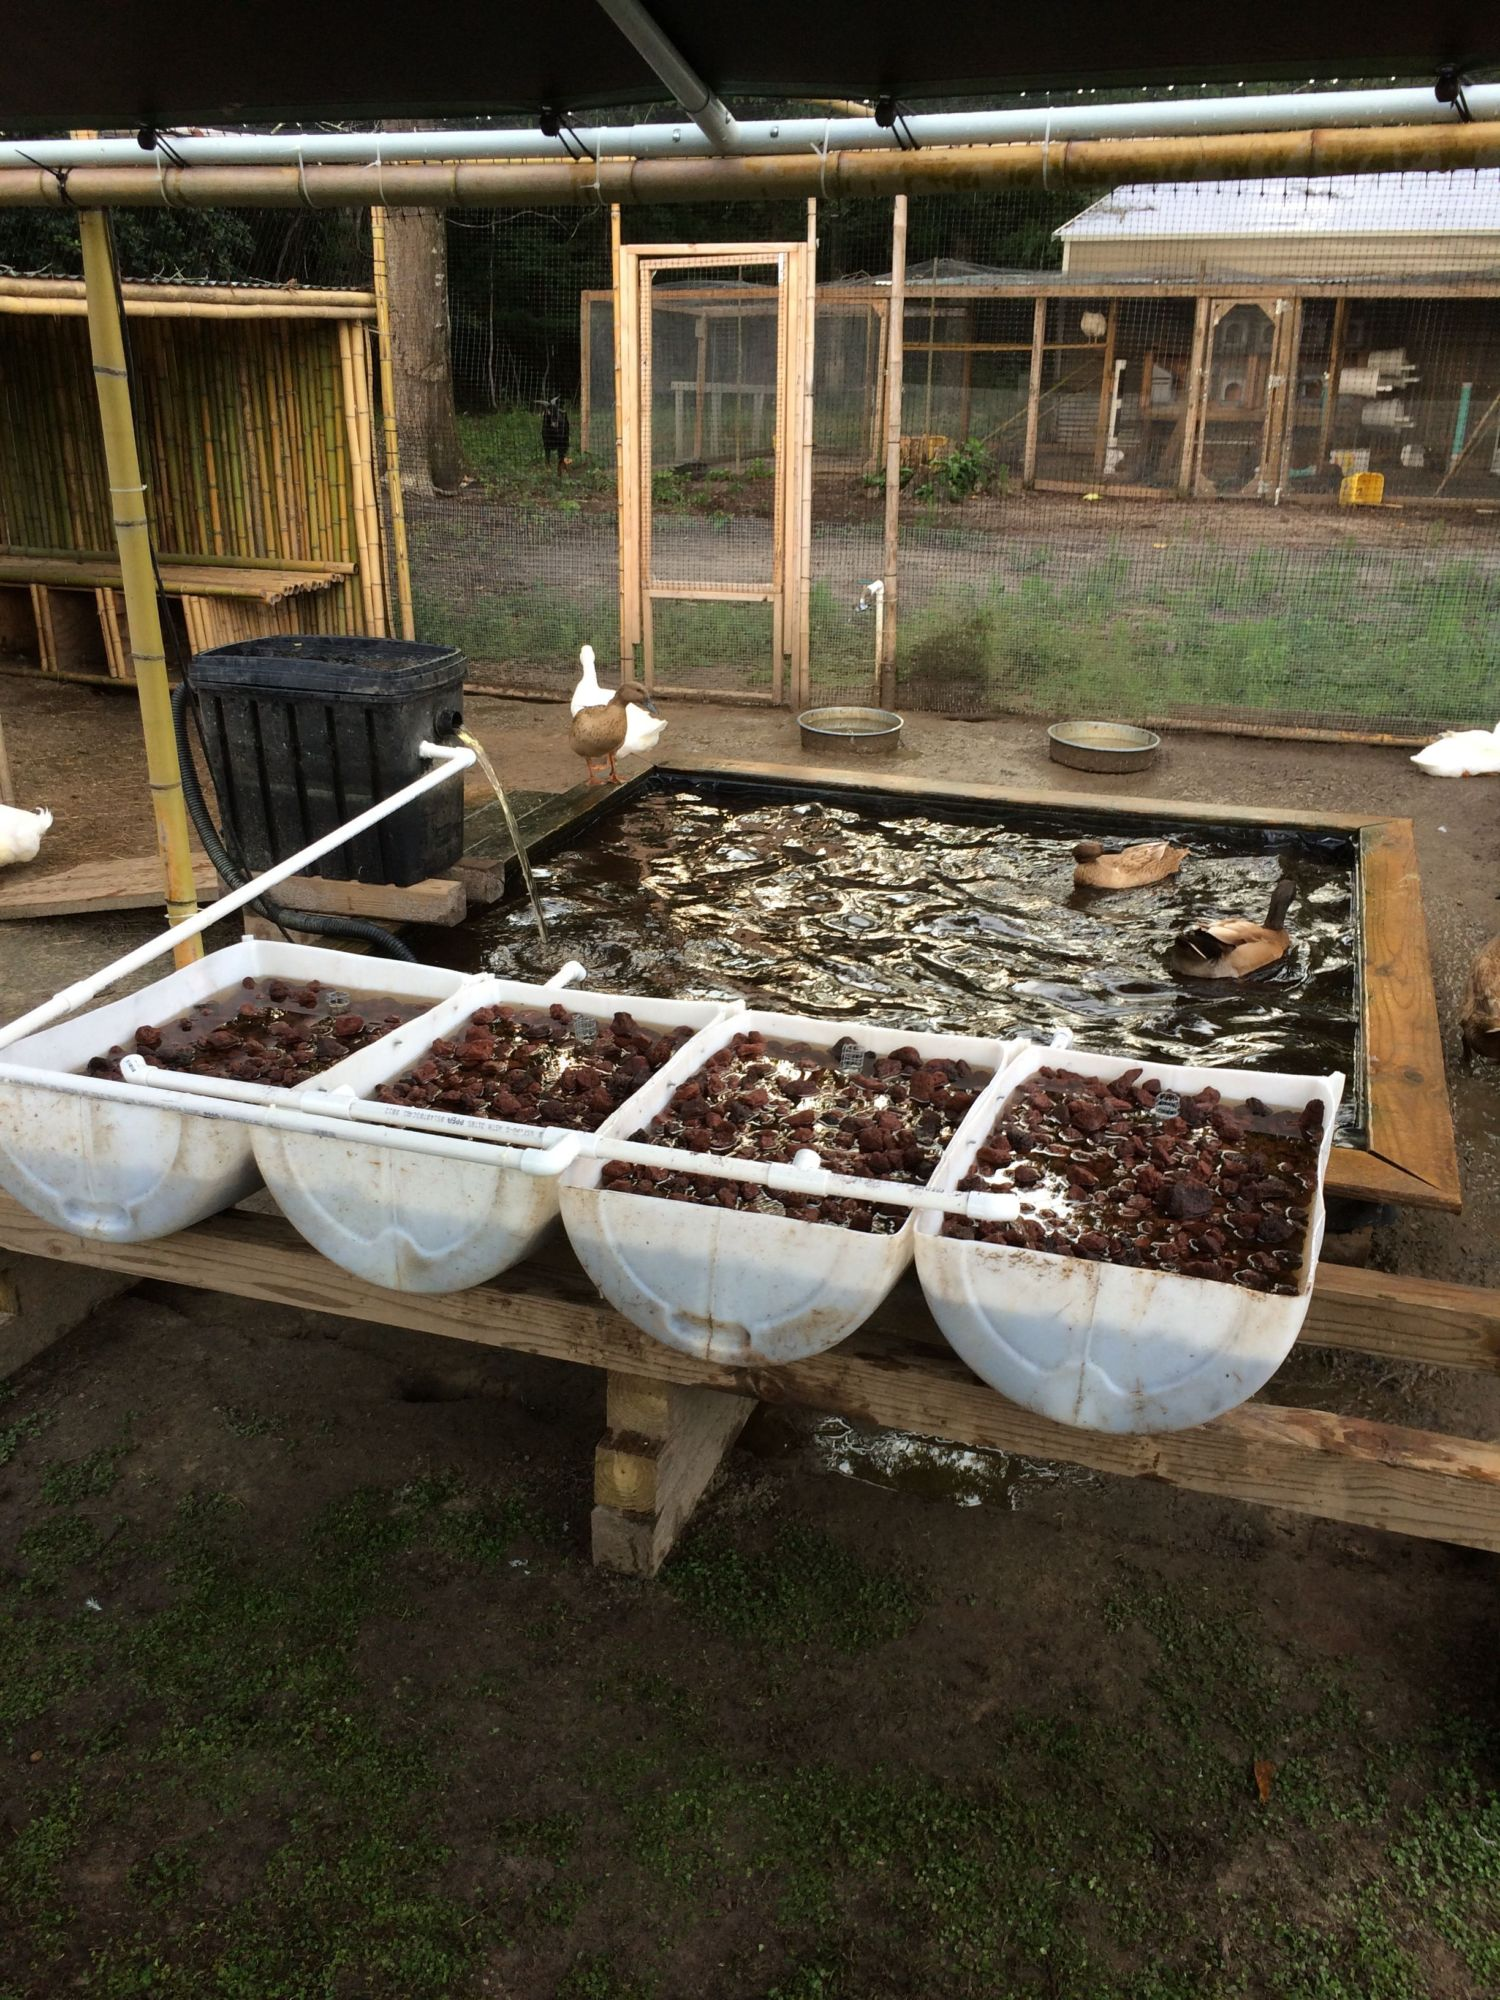 Duckaponics systems for growing duck food and cleaning water